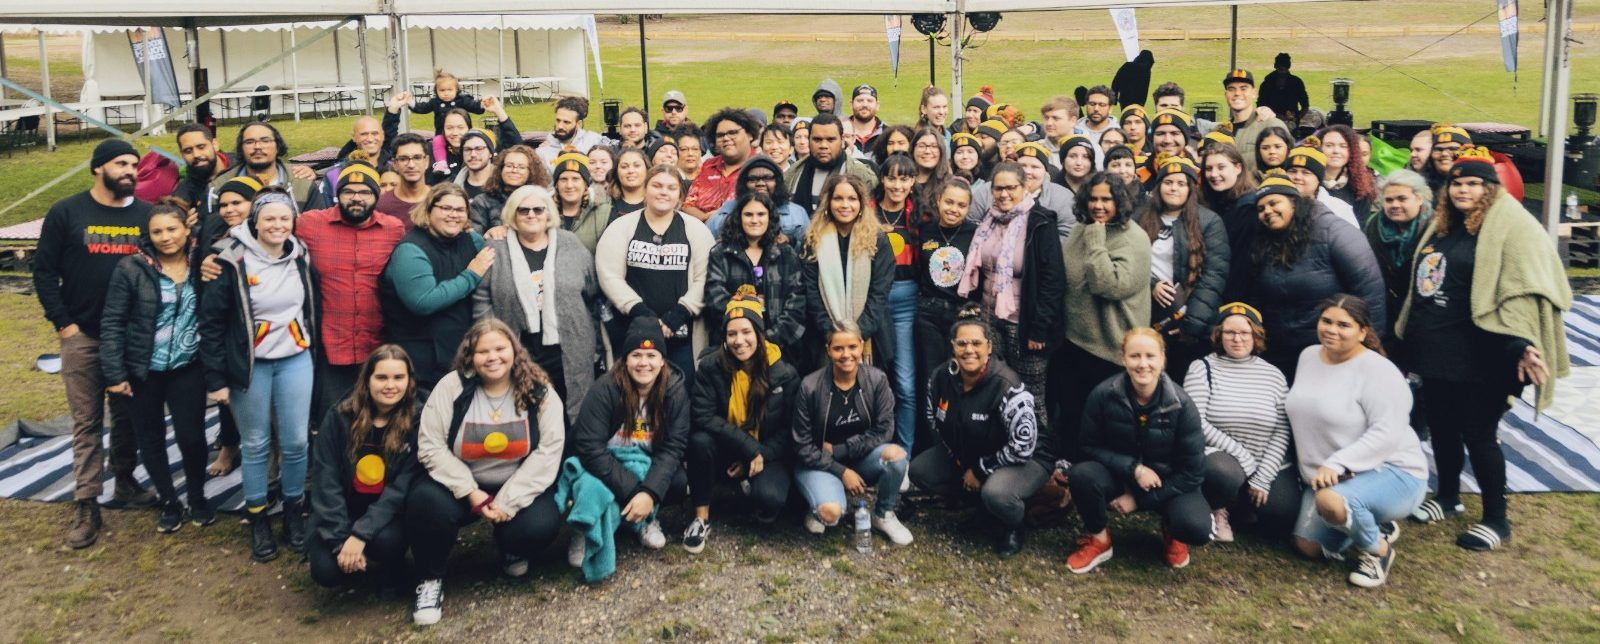 Group photo of 100 young people at the Koorie Youth Summit 2019